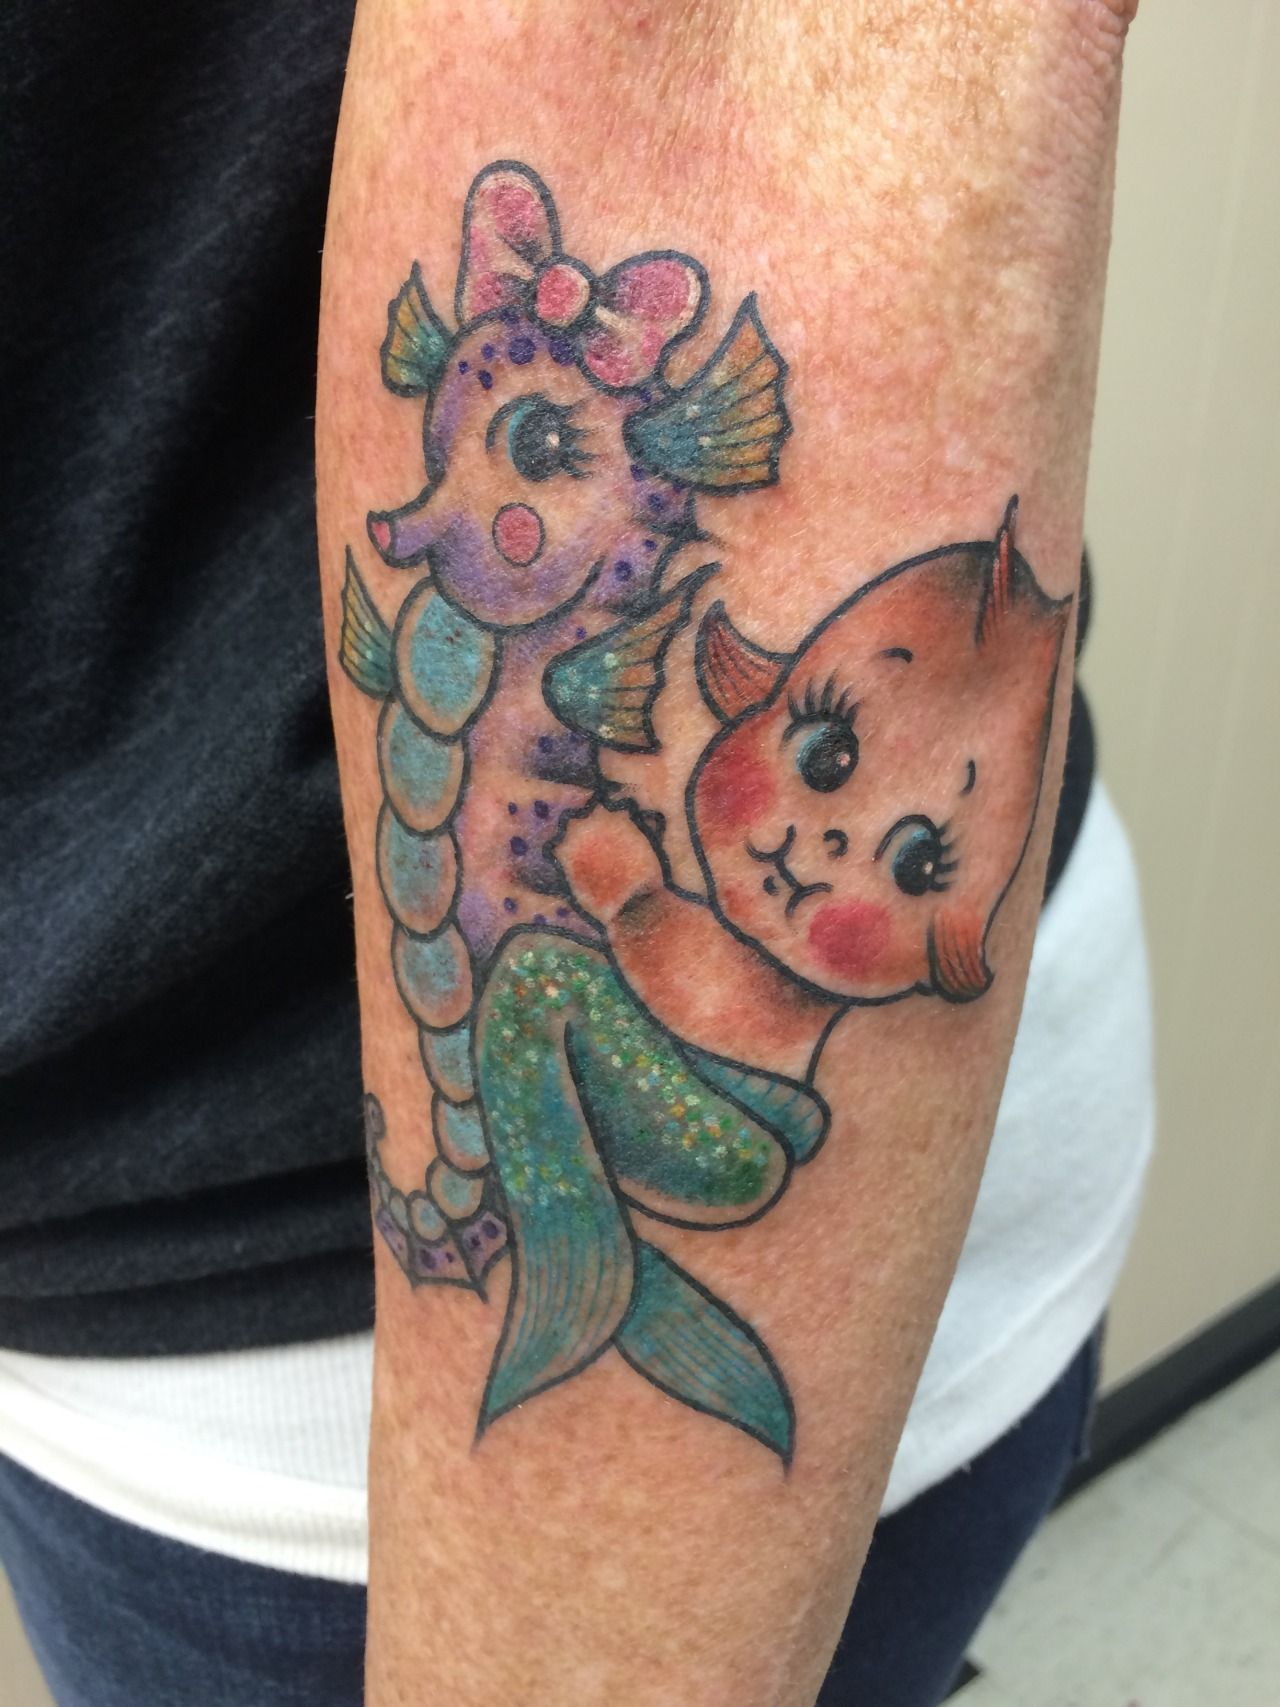 Little Mermaid Kewpie Riding A Seahorse By Candice At Autumn Moon Tattoo In Anaheim Ca Ig Candeeo Goldenbough Tumblr Com Doll Tattoo Tattoo Themes Tattoos